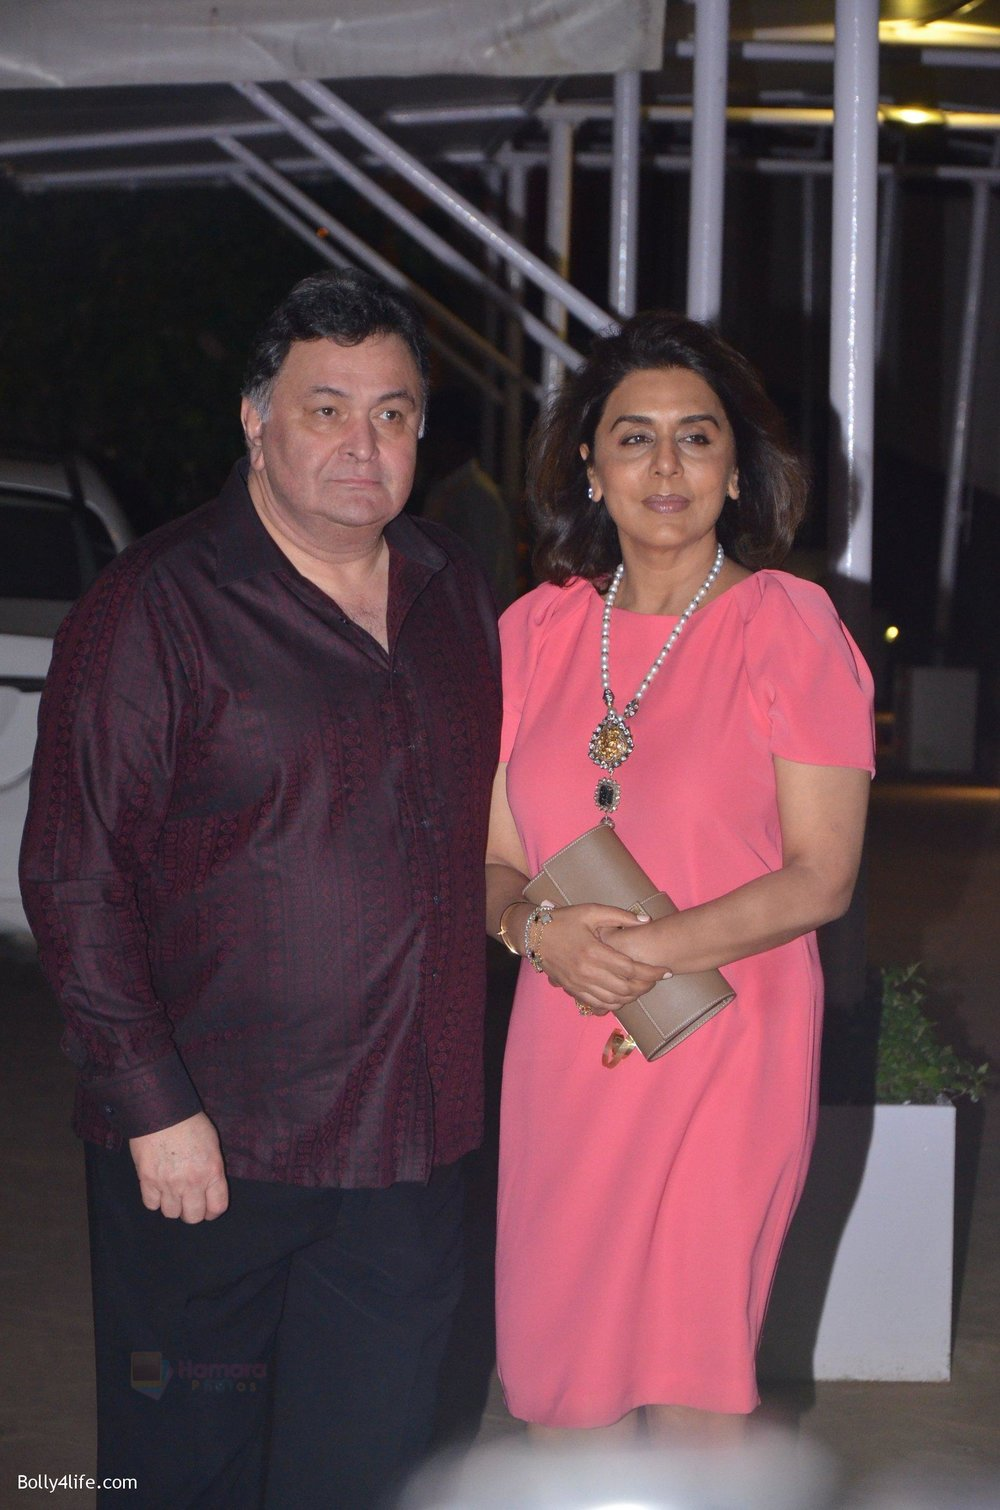 Rishi-Kapoor-Neetu-Singh-at-Reema-jain-bday-party-in-Amadeus-NCPA-on-28th-Sept-2016-774.jpg